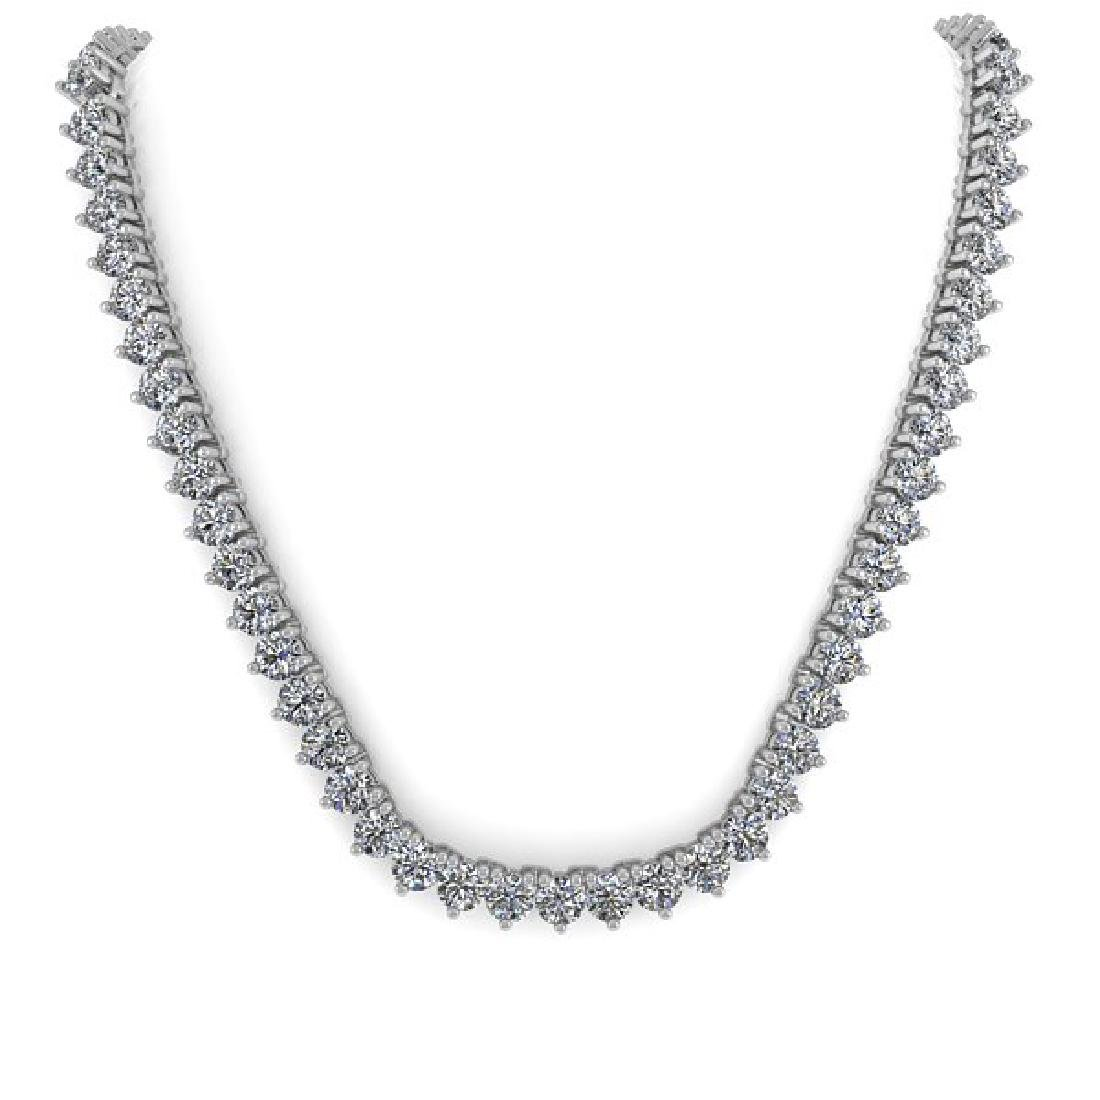 48 CTW Solitaire SI Diamond Necklace 14K White Gold - 3